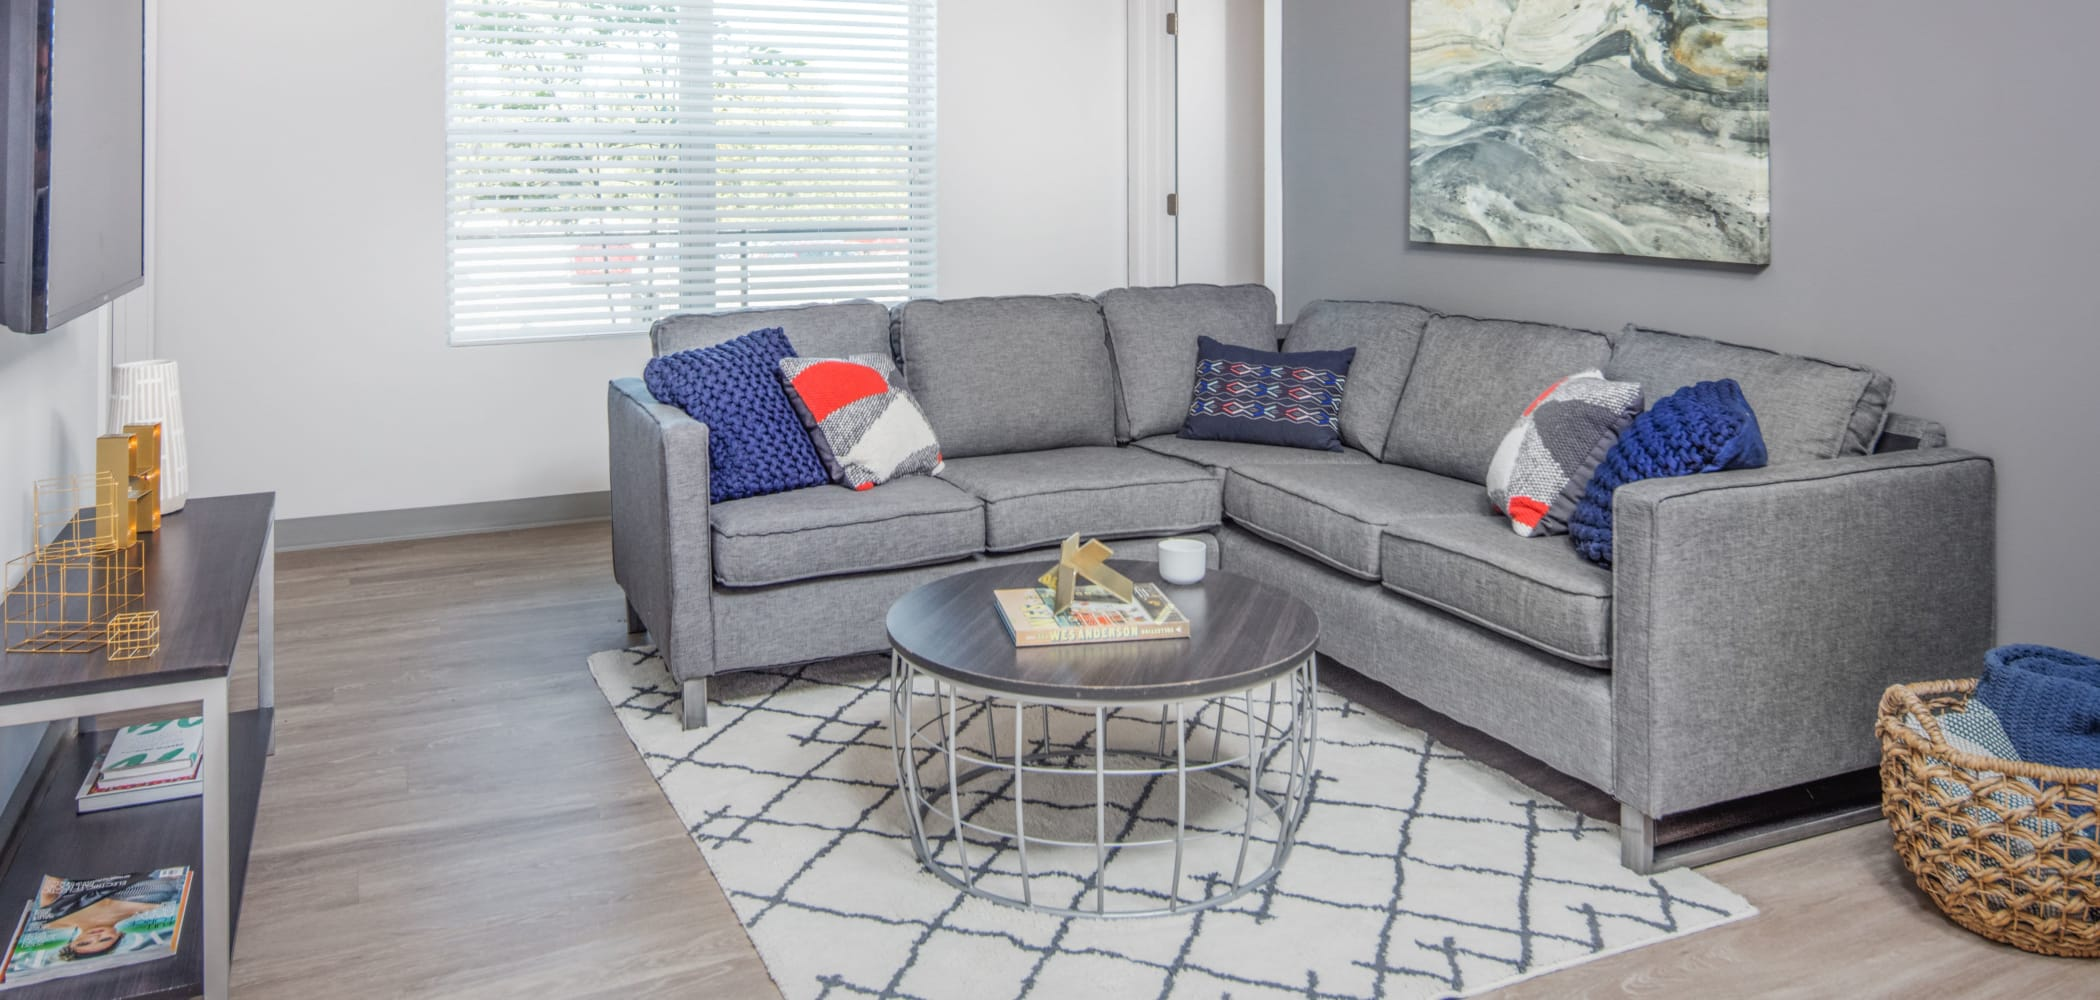 Spacious living room at evolve Tuscaloosa in Tuscaloosa, Alabama